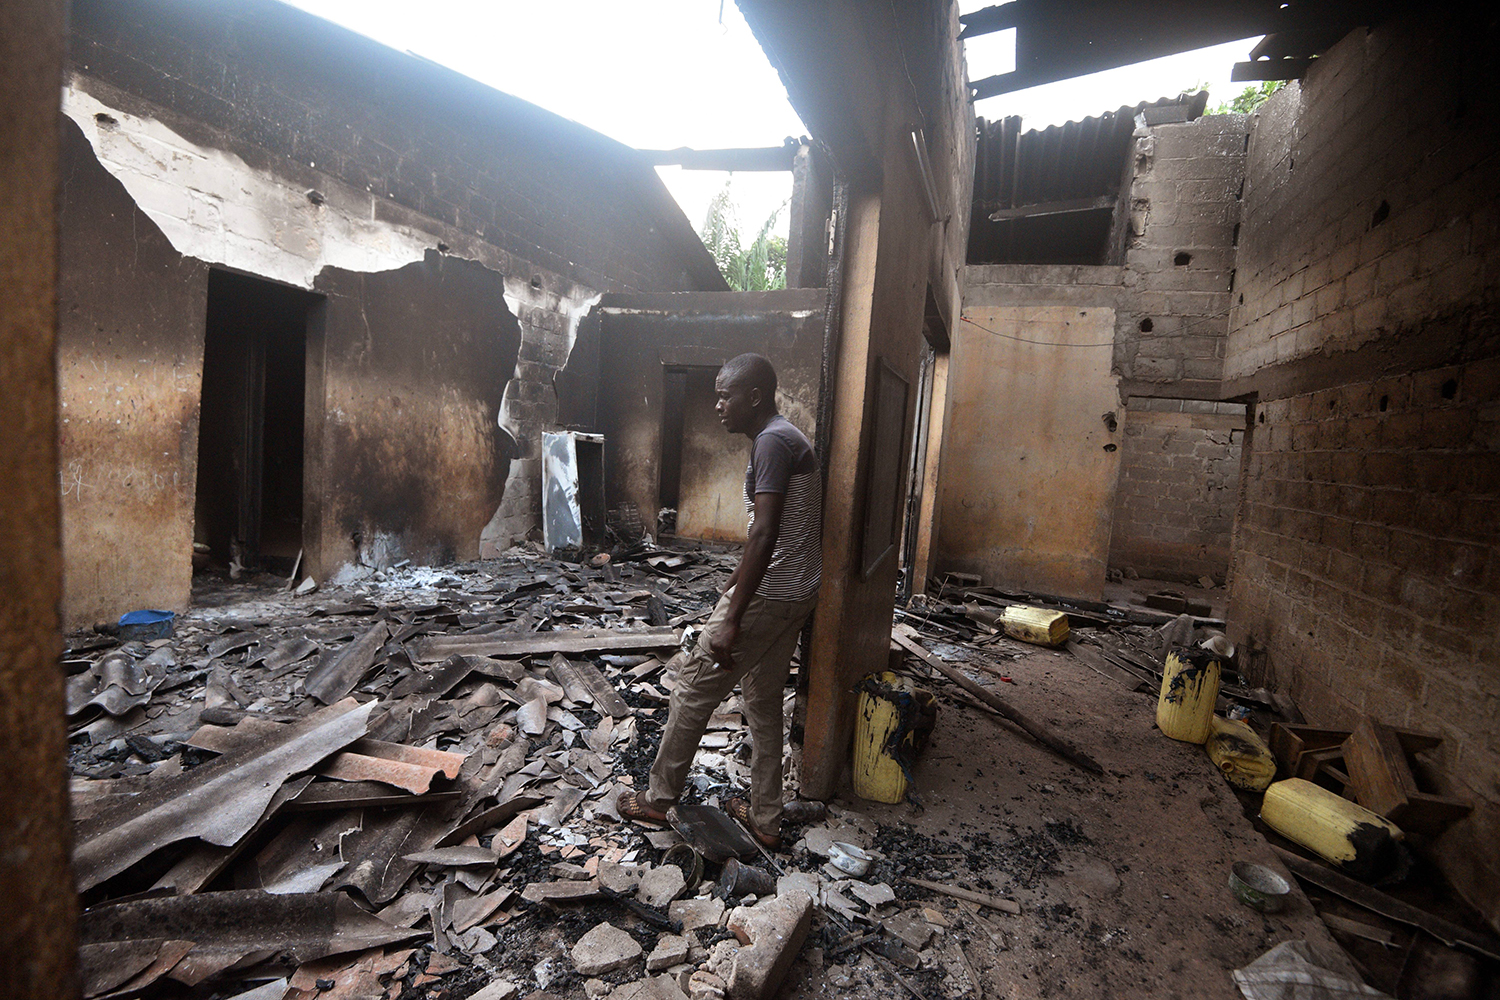 A man cries inside his destroyed house in Toumodi, central Ivory Coast, on Nov. 3 after houses and shops were set ablaze in clashes between neighboring ethnic communities who back rival political factions. SIA KAMBOU/AFP via Getty Images